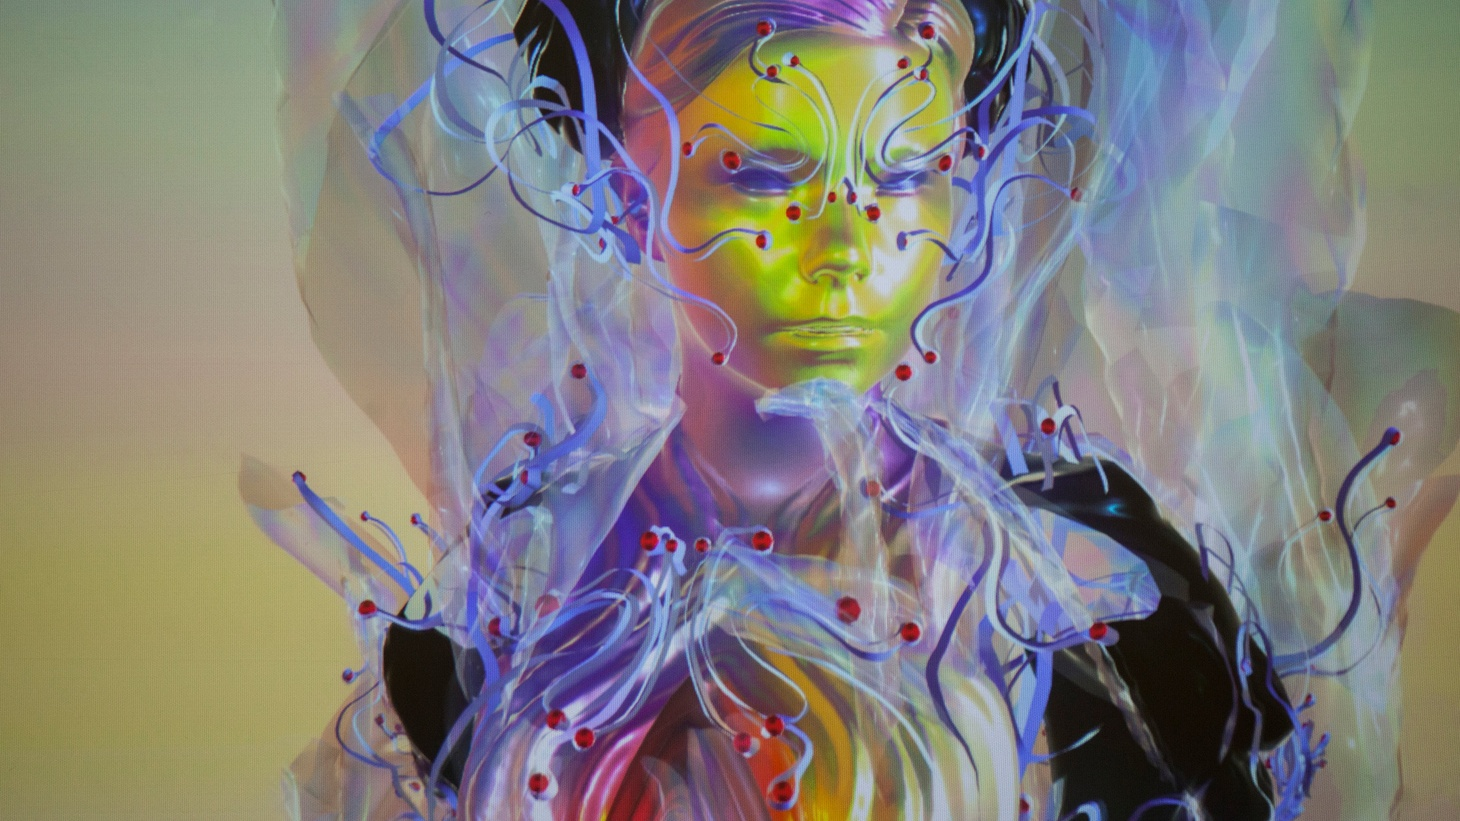 Björk is a pioneer in music, art and technology. She's been exploring her own catalogue through different lenses -- including classical reinterpretations of her songs and a series of innovative virtual reality works. 10am